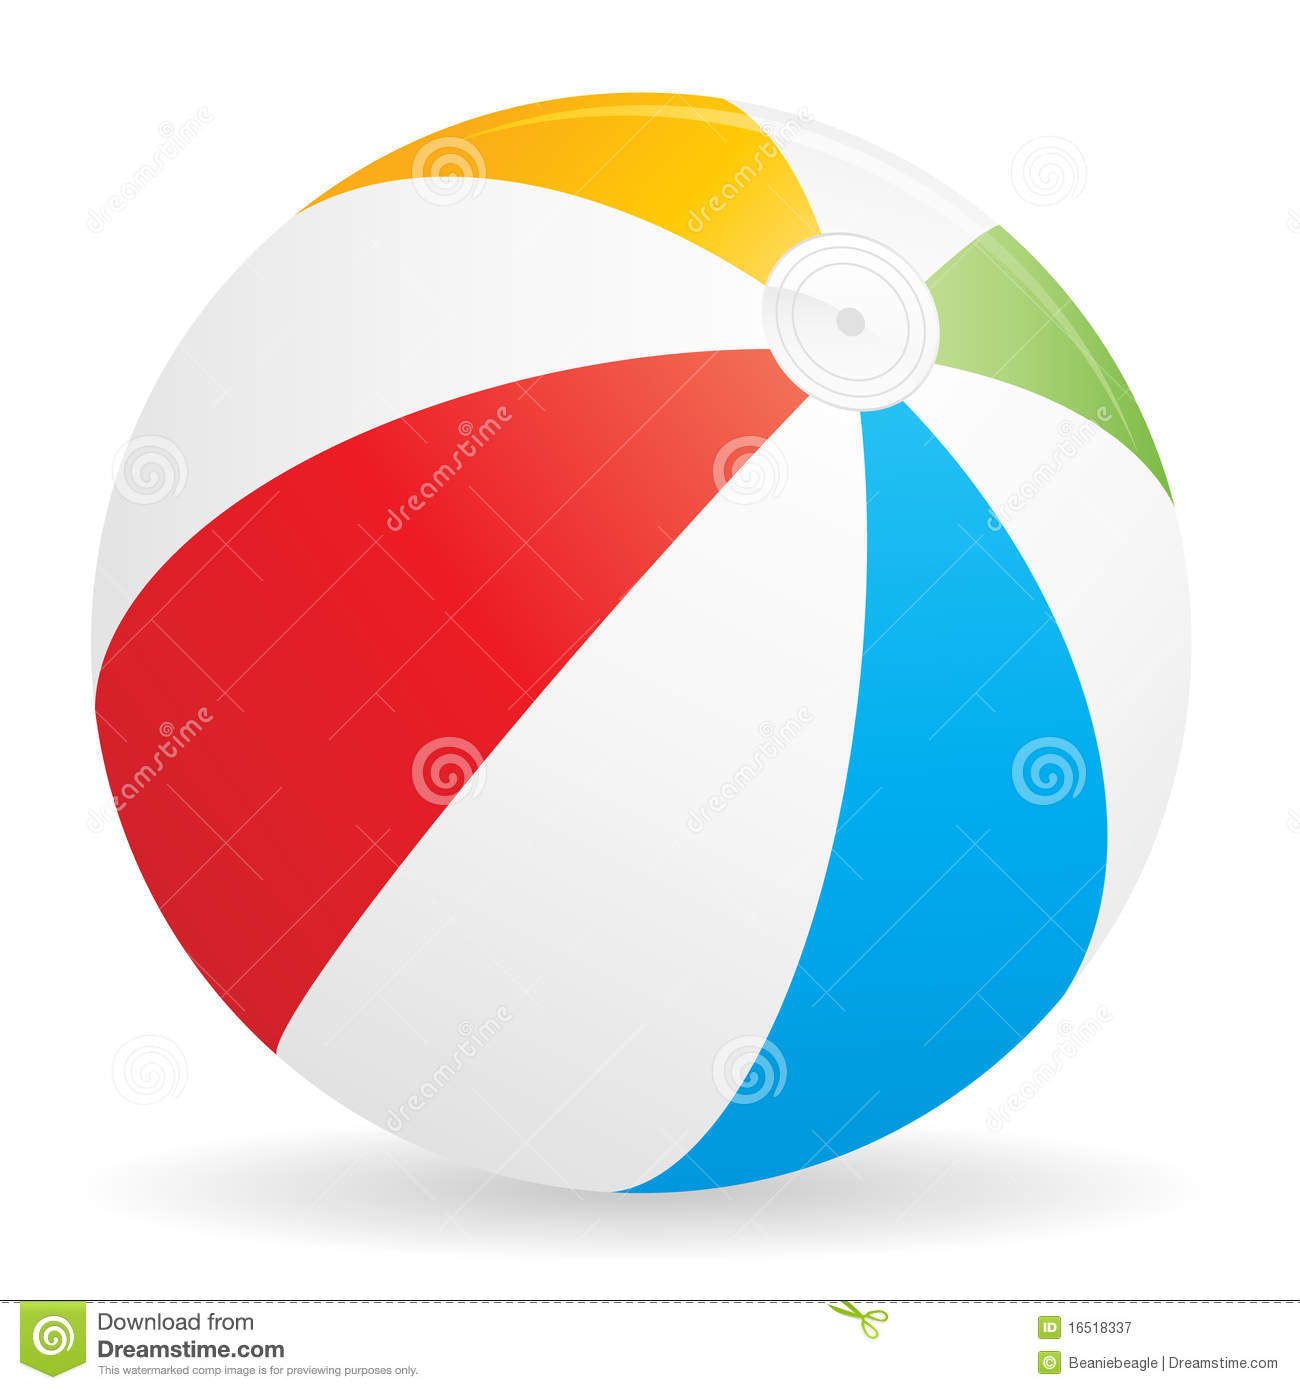 colorful illustration of a beachball.